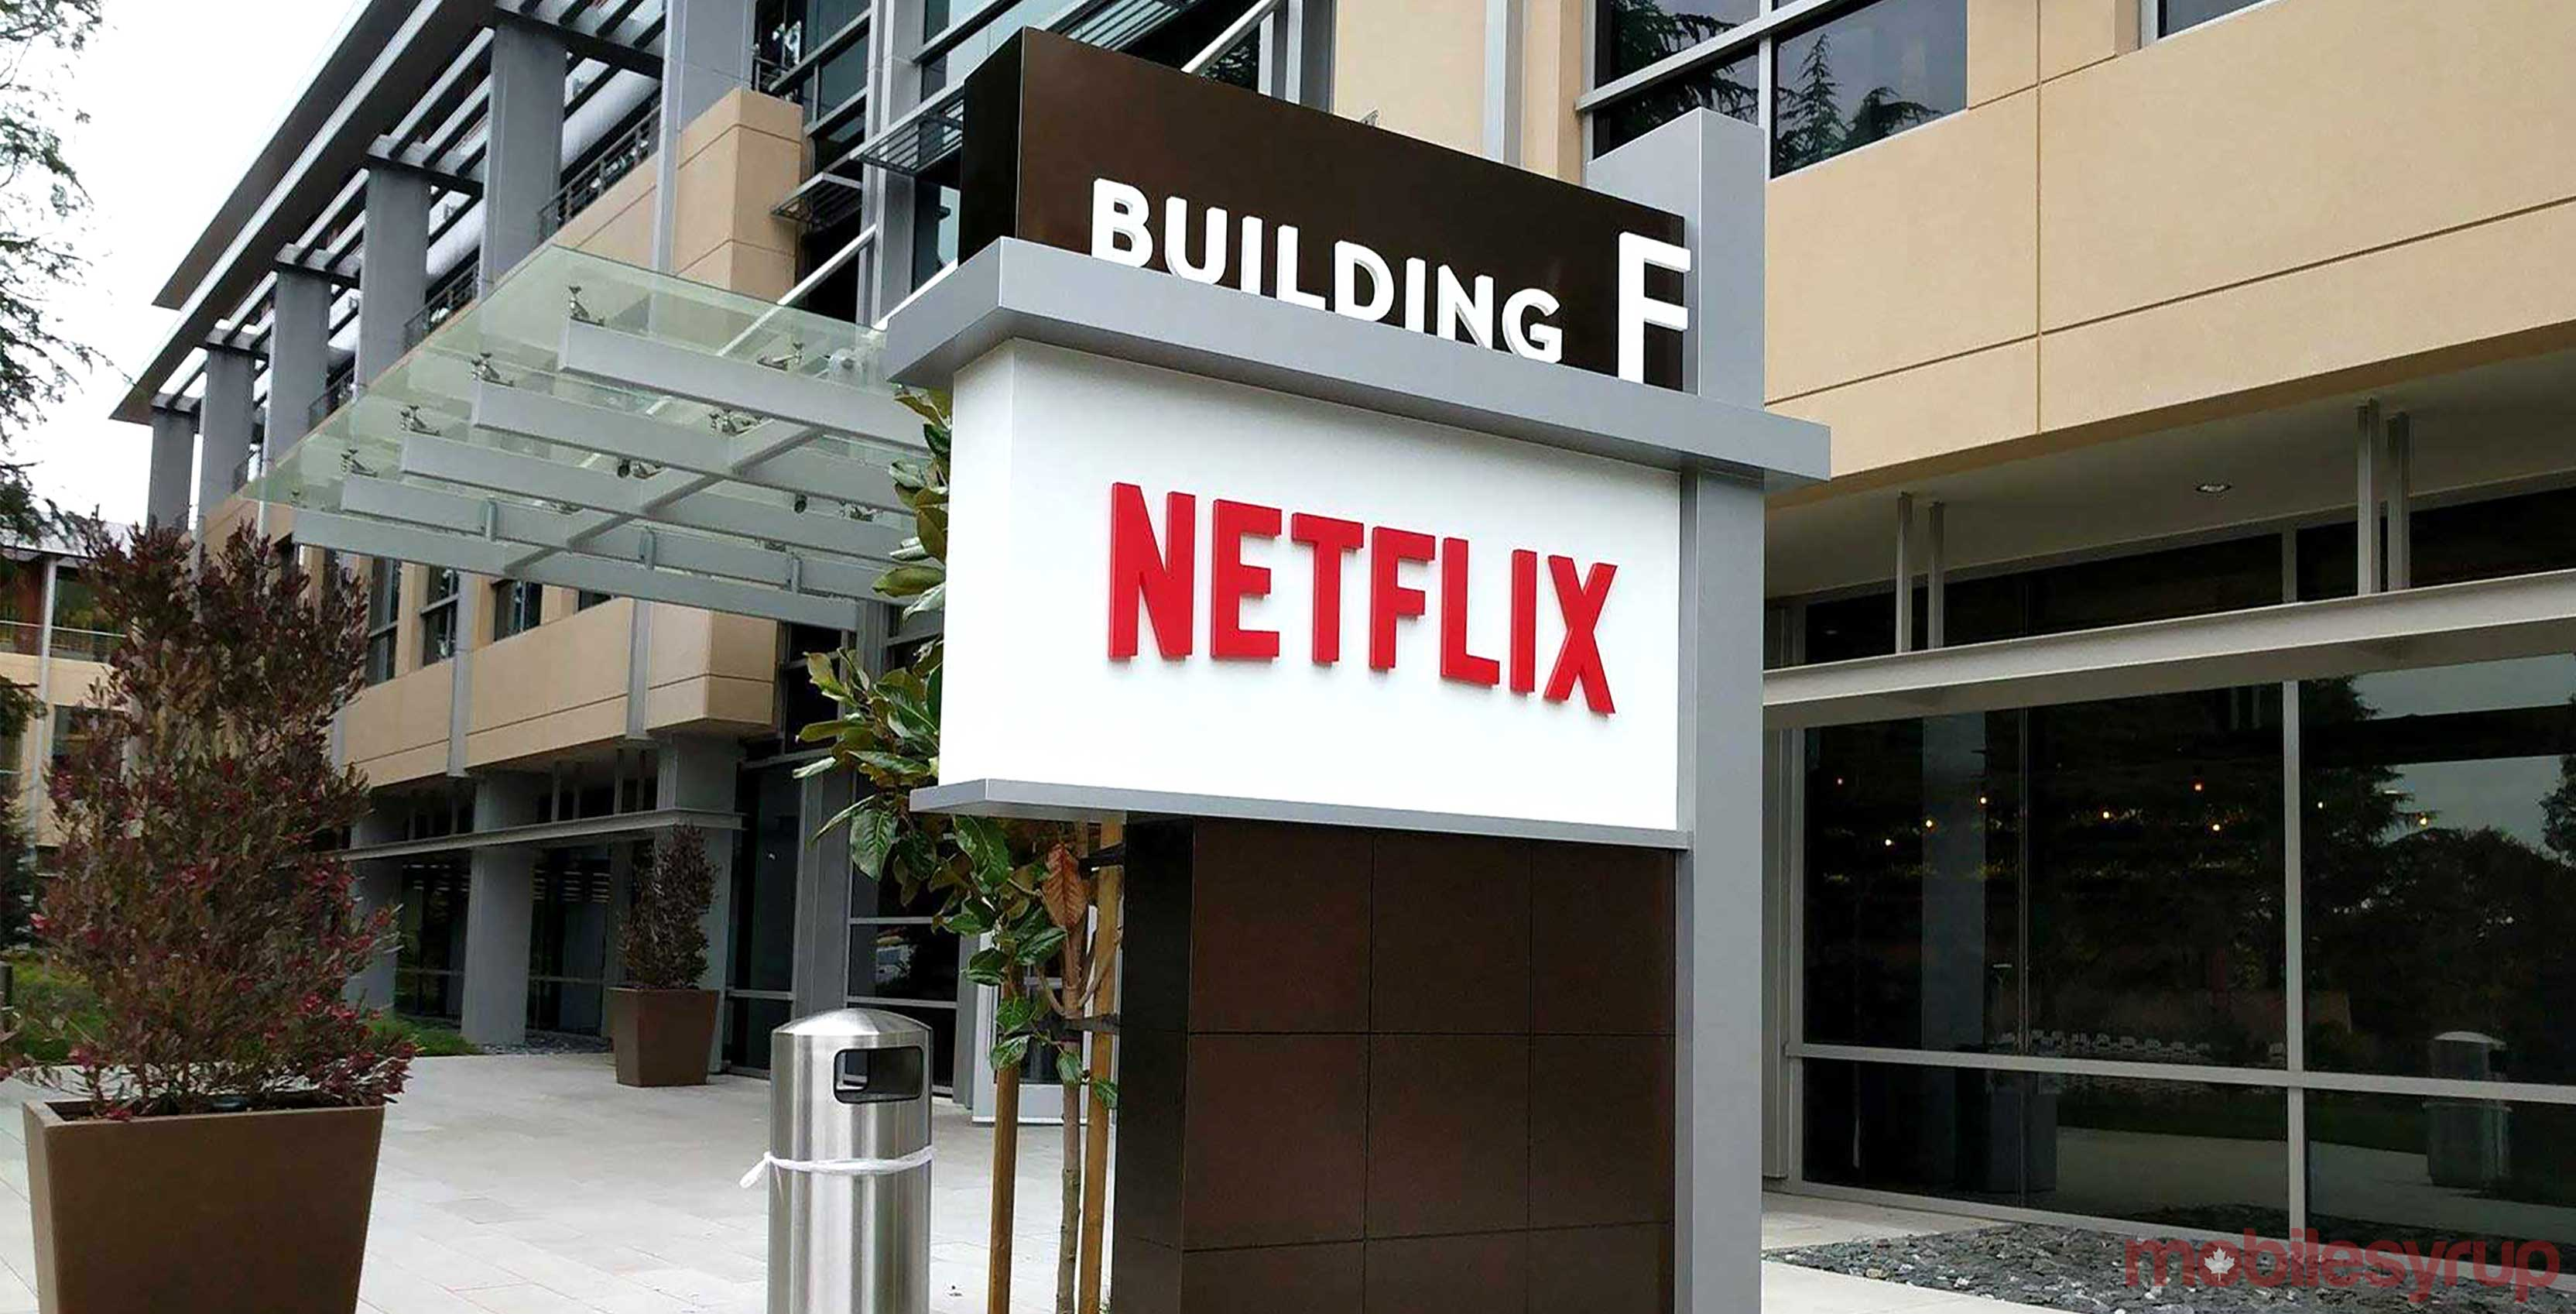 Netflix office sign